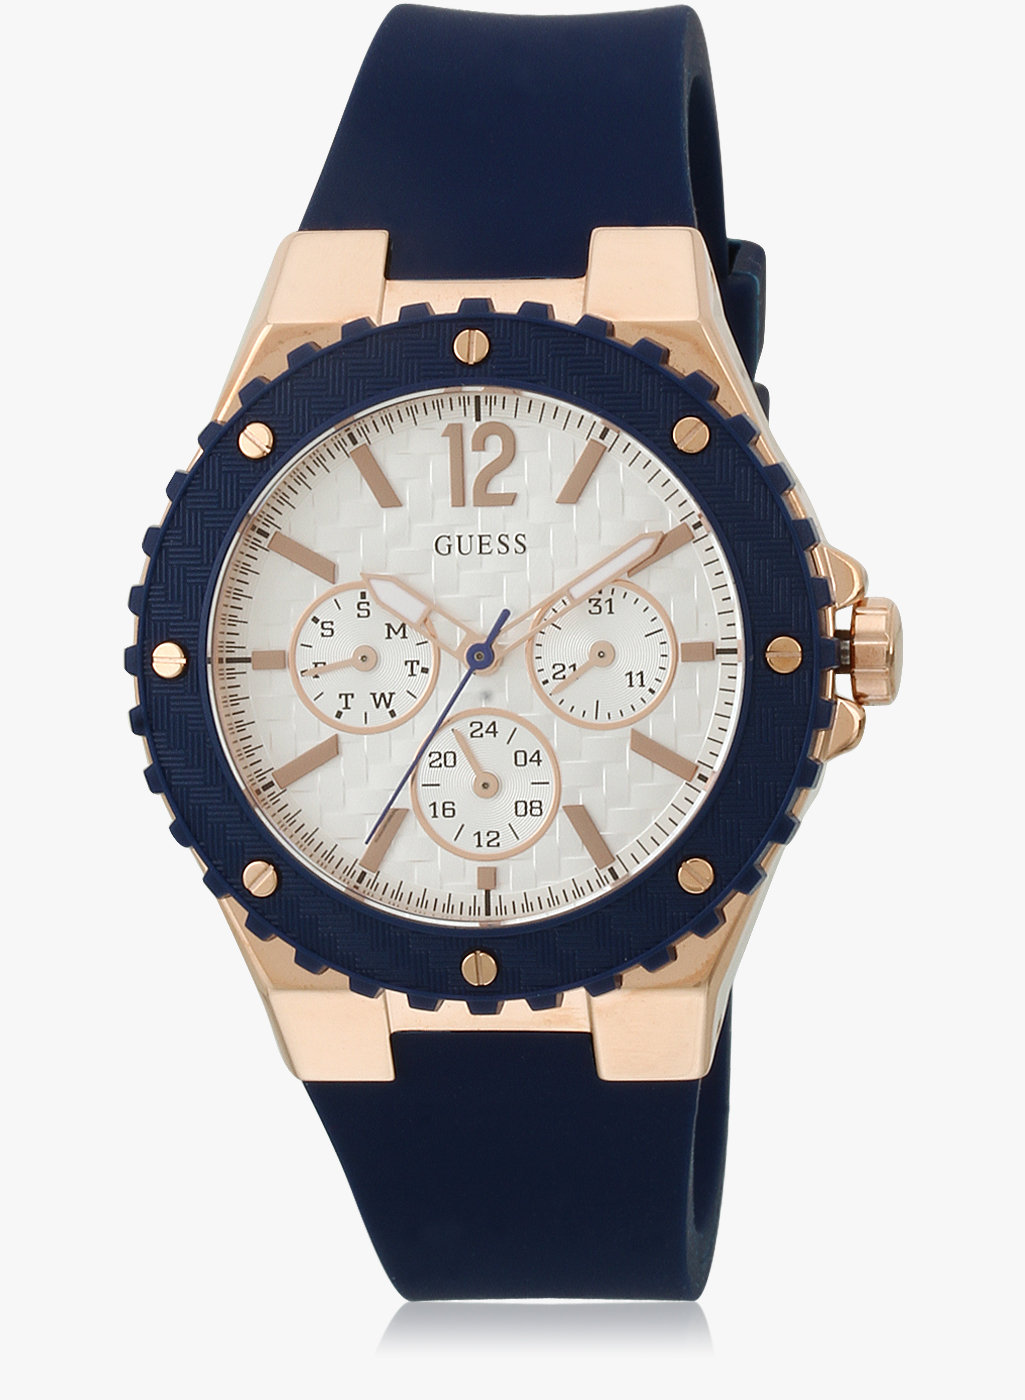 Guess-Guess-Overdrive-Analog-White-Blue-Watch-6927-1942661-1-zoom_l